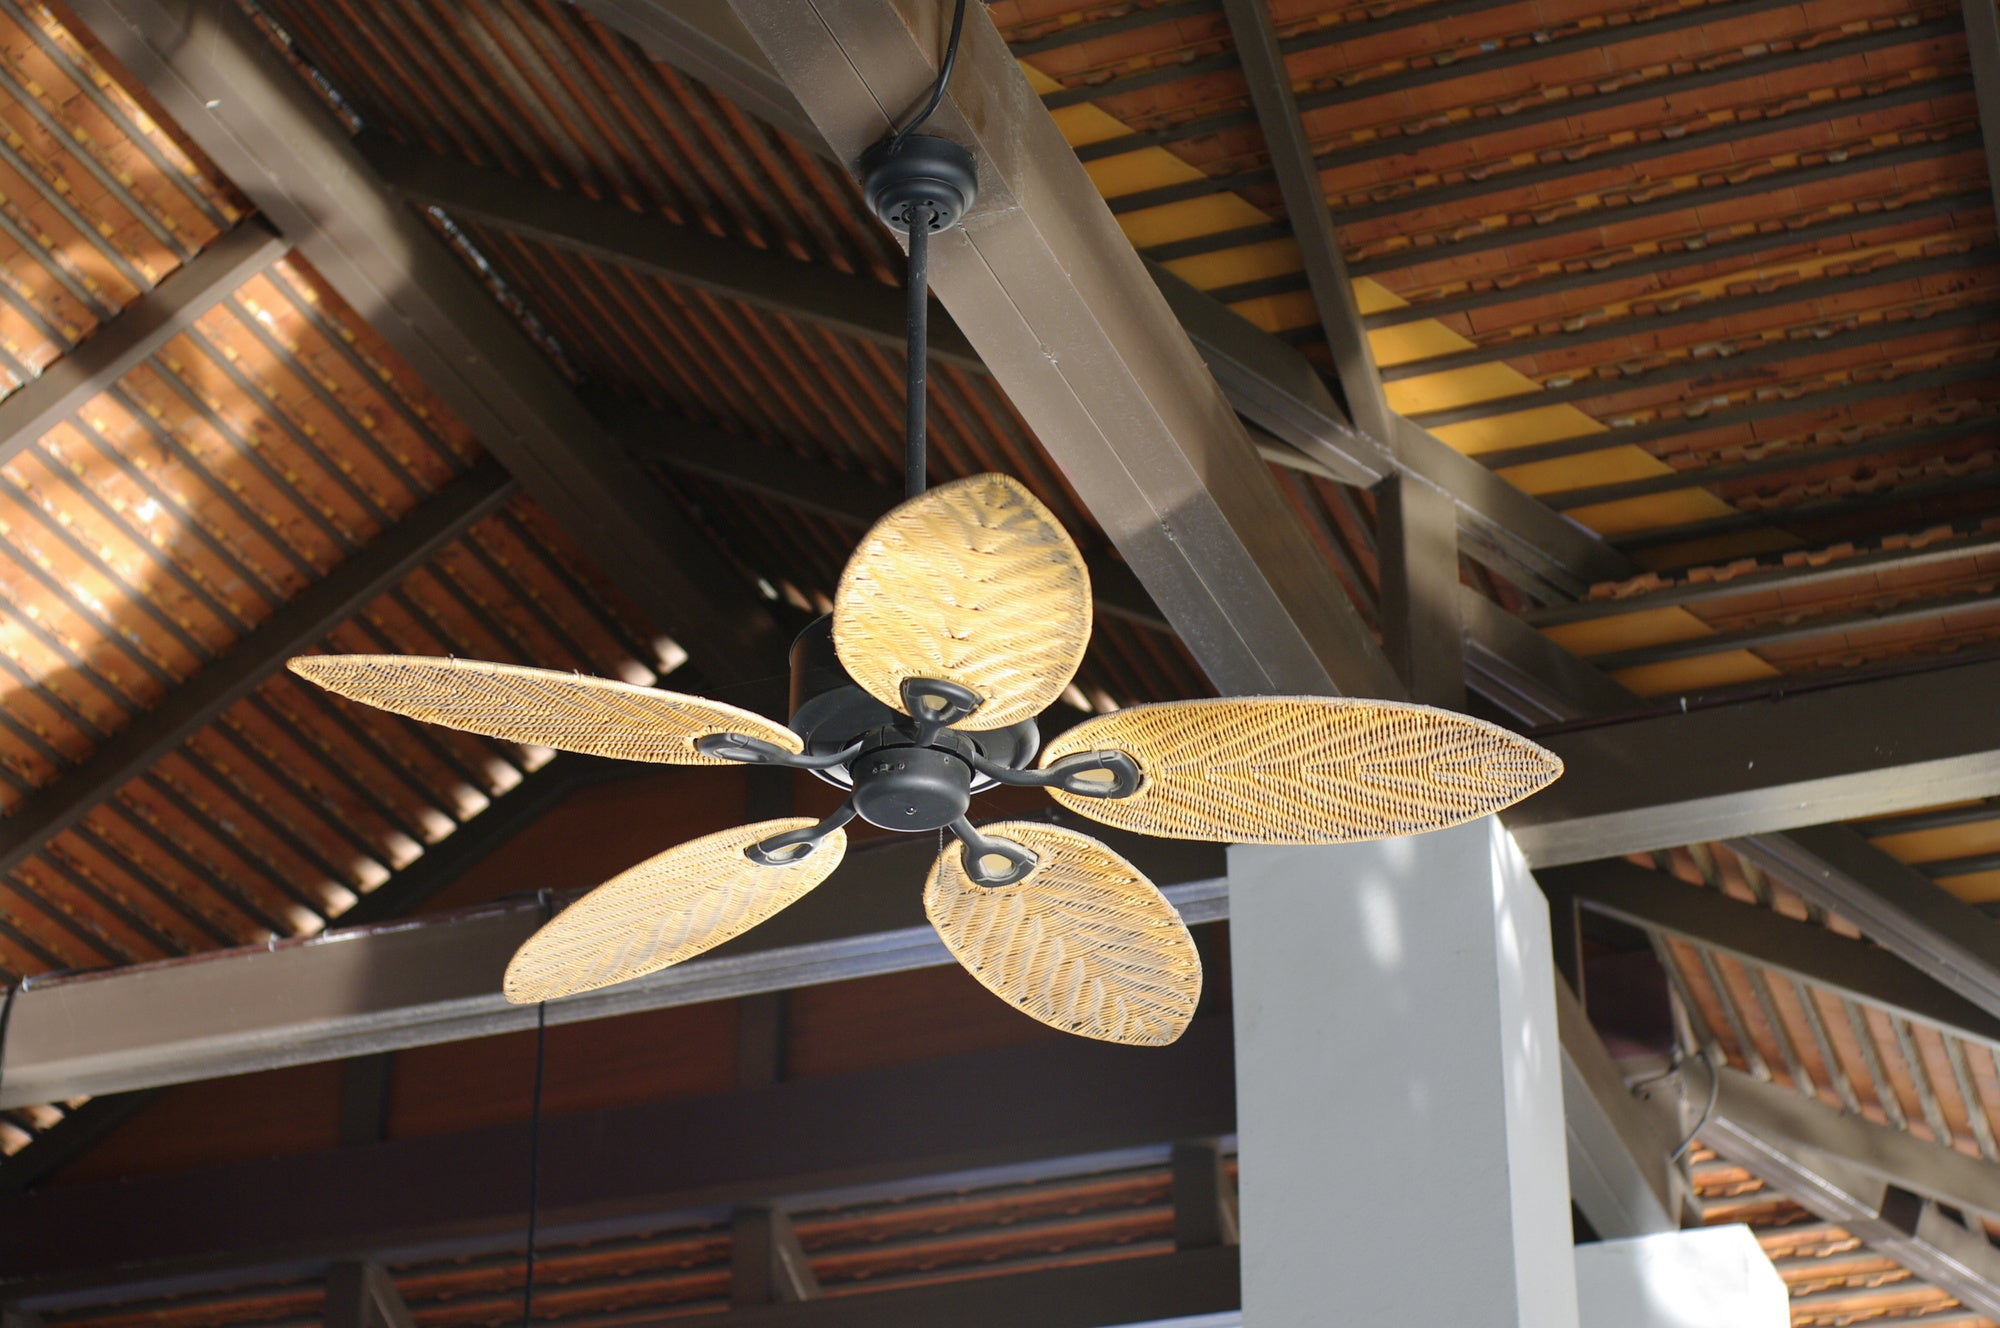 The Ultimate Ceiling Fan Buying Guide